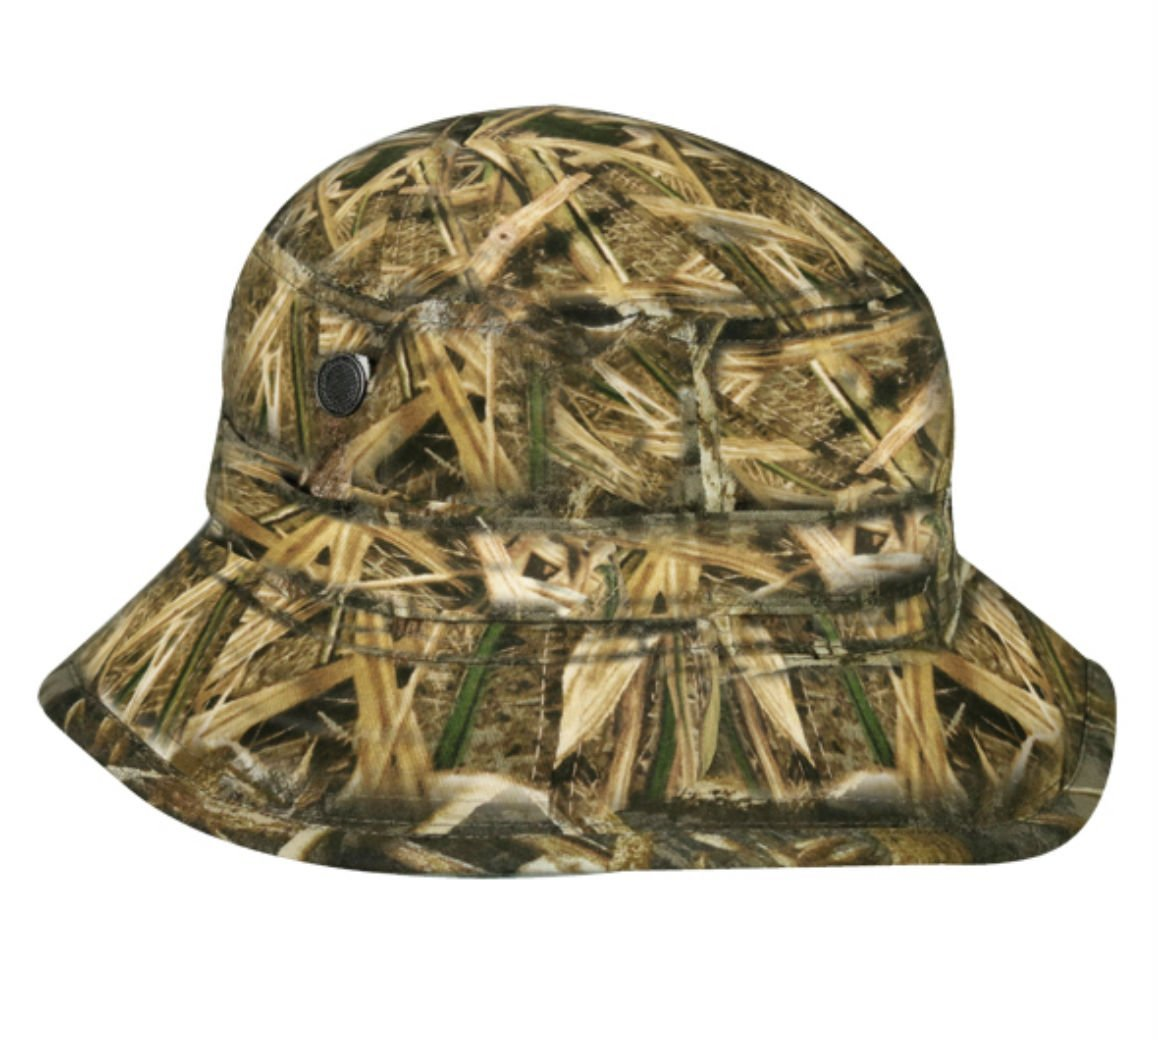 708e2e46060 Get Quotations · Realtree Boonie Hat with Adjustable Chin Strap